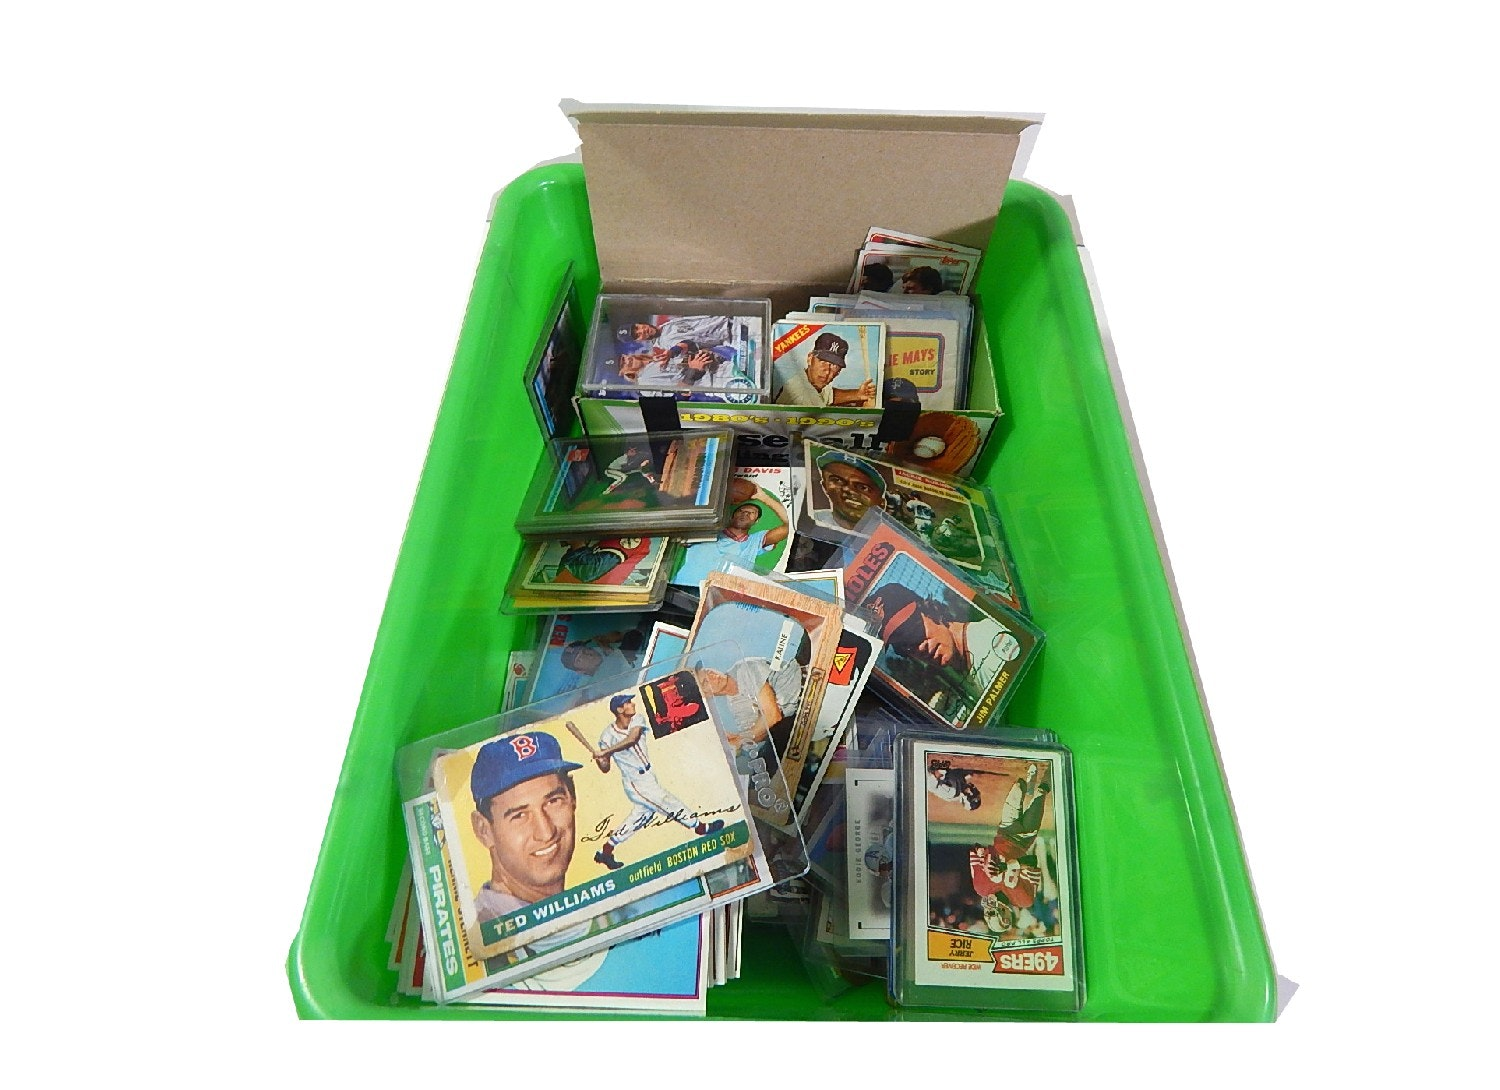 Bin of 1950's thru 2000's Sports Cards - with 1955 Ted Williams